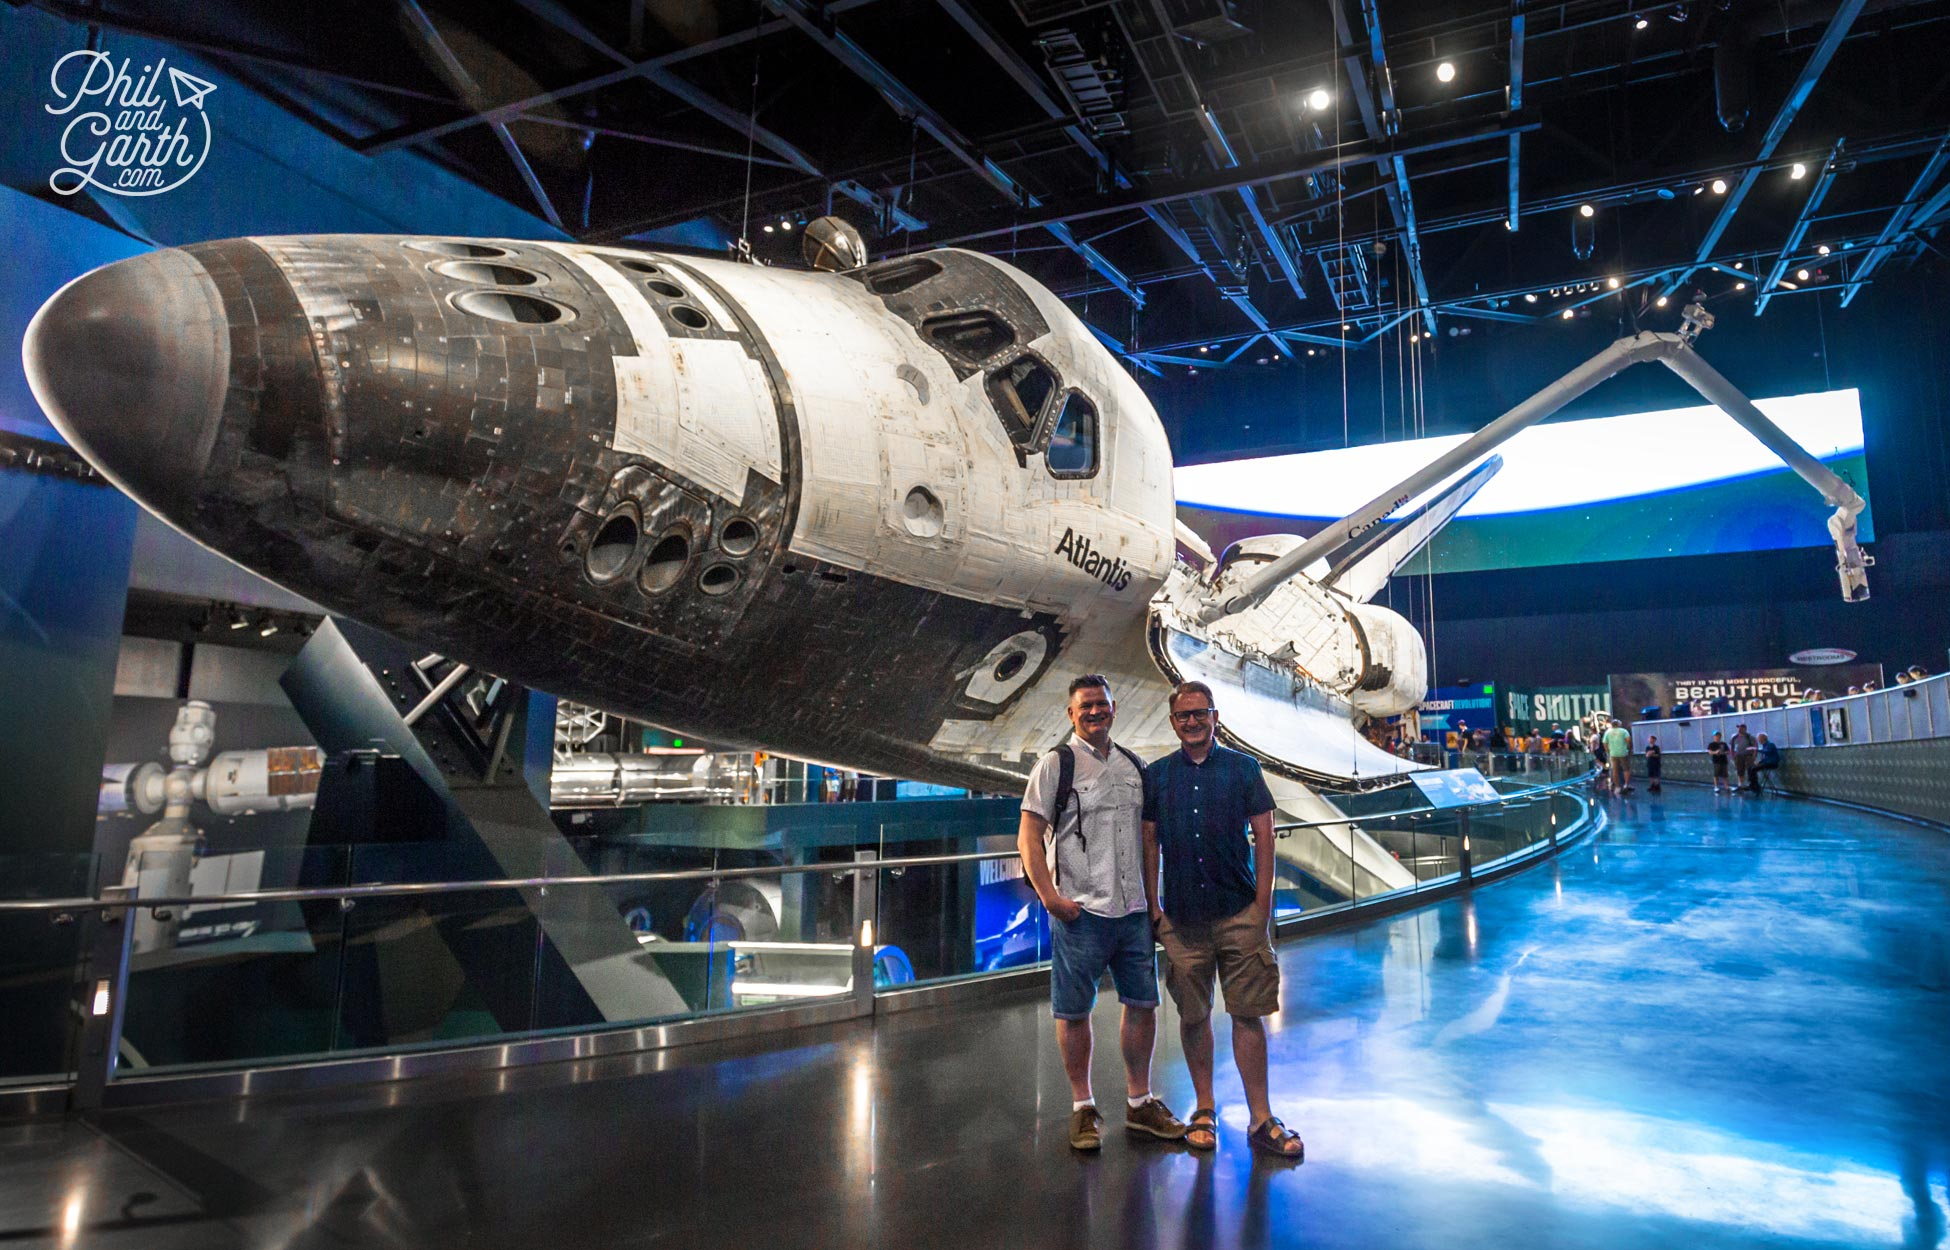 Phil and Garth stood next to Space Shuttle Atlantis